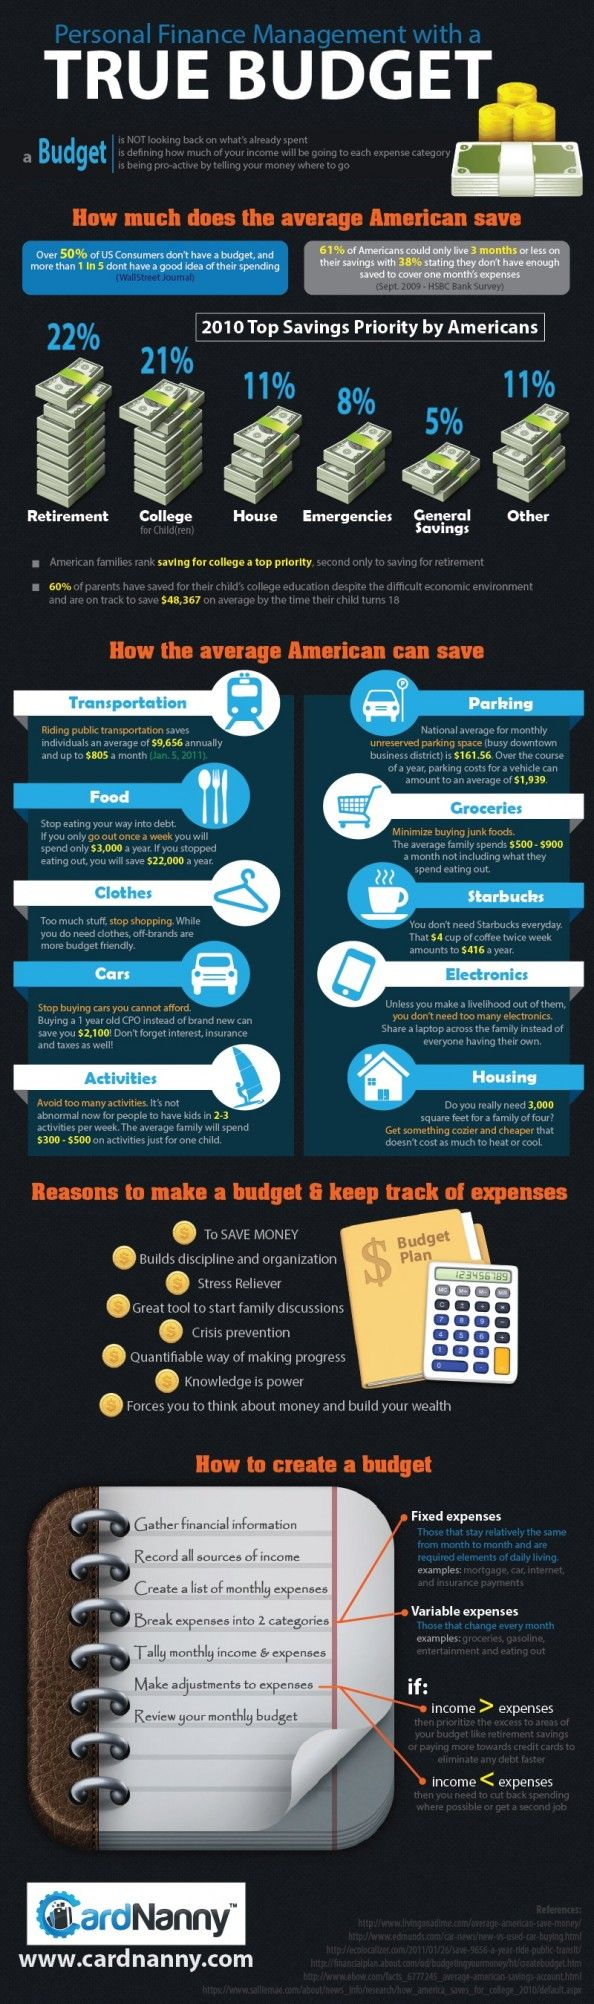 1089 best Finance Tips images on Pinterest | Finance, Monthly budget ...